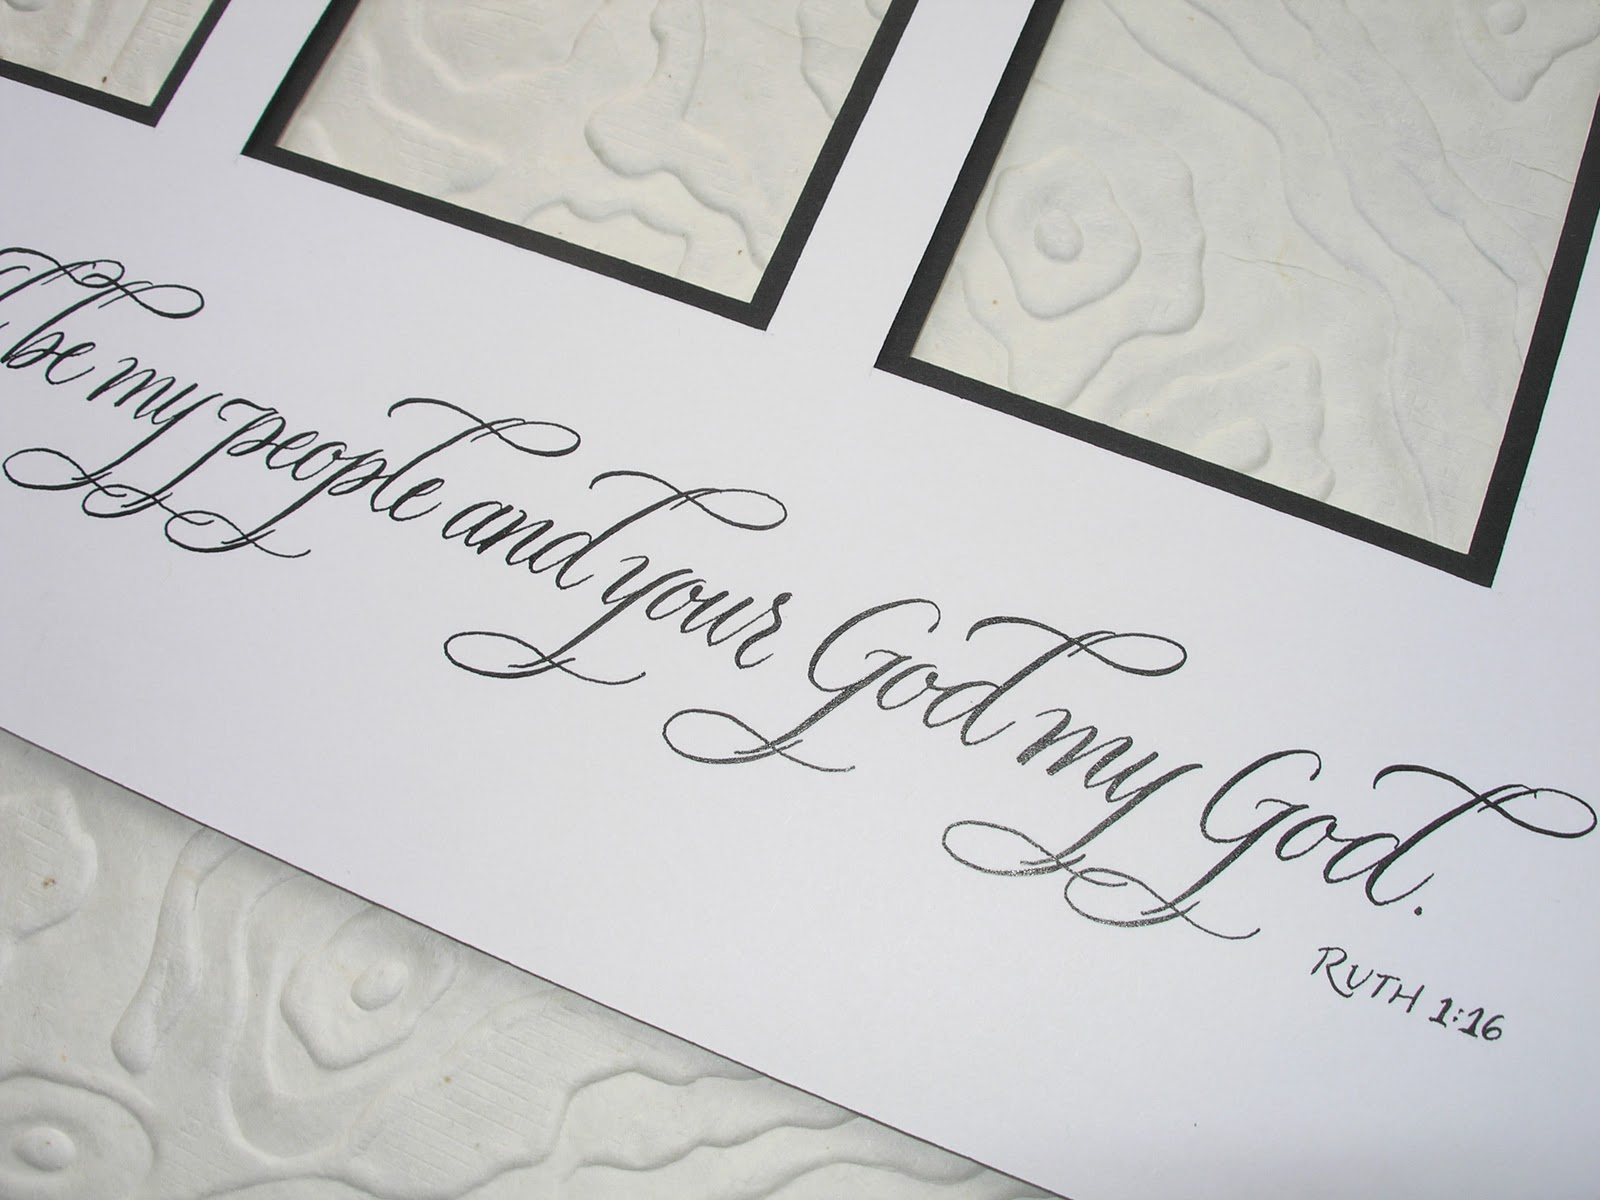 Wedding Gift Etiquette Bride Groom : ... by Jane Farr: Ruth 1:16 Calligraphy - Wedding Gift for Groom